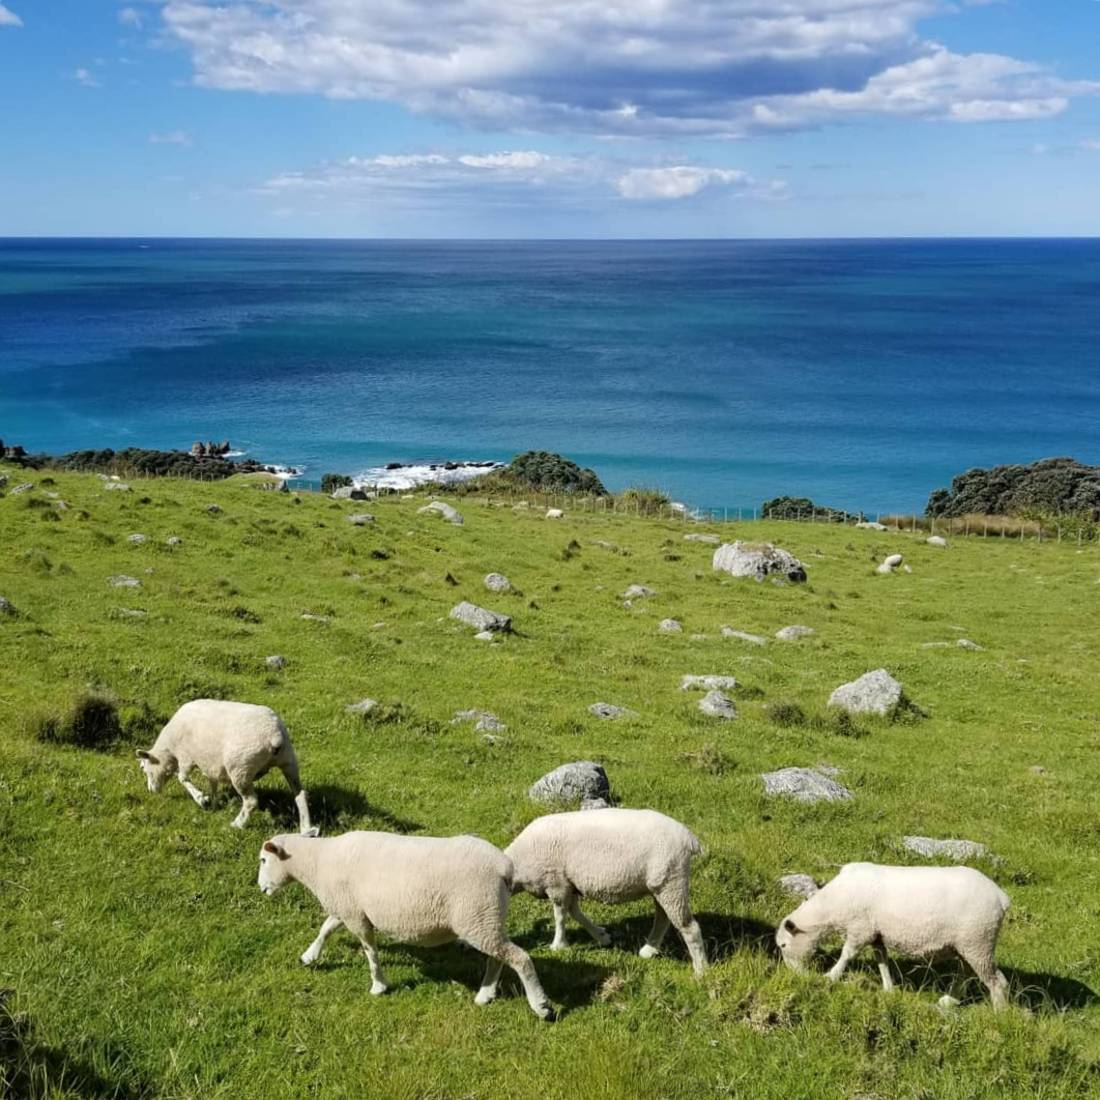 Sheep on the Mount